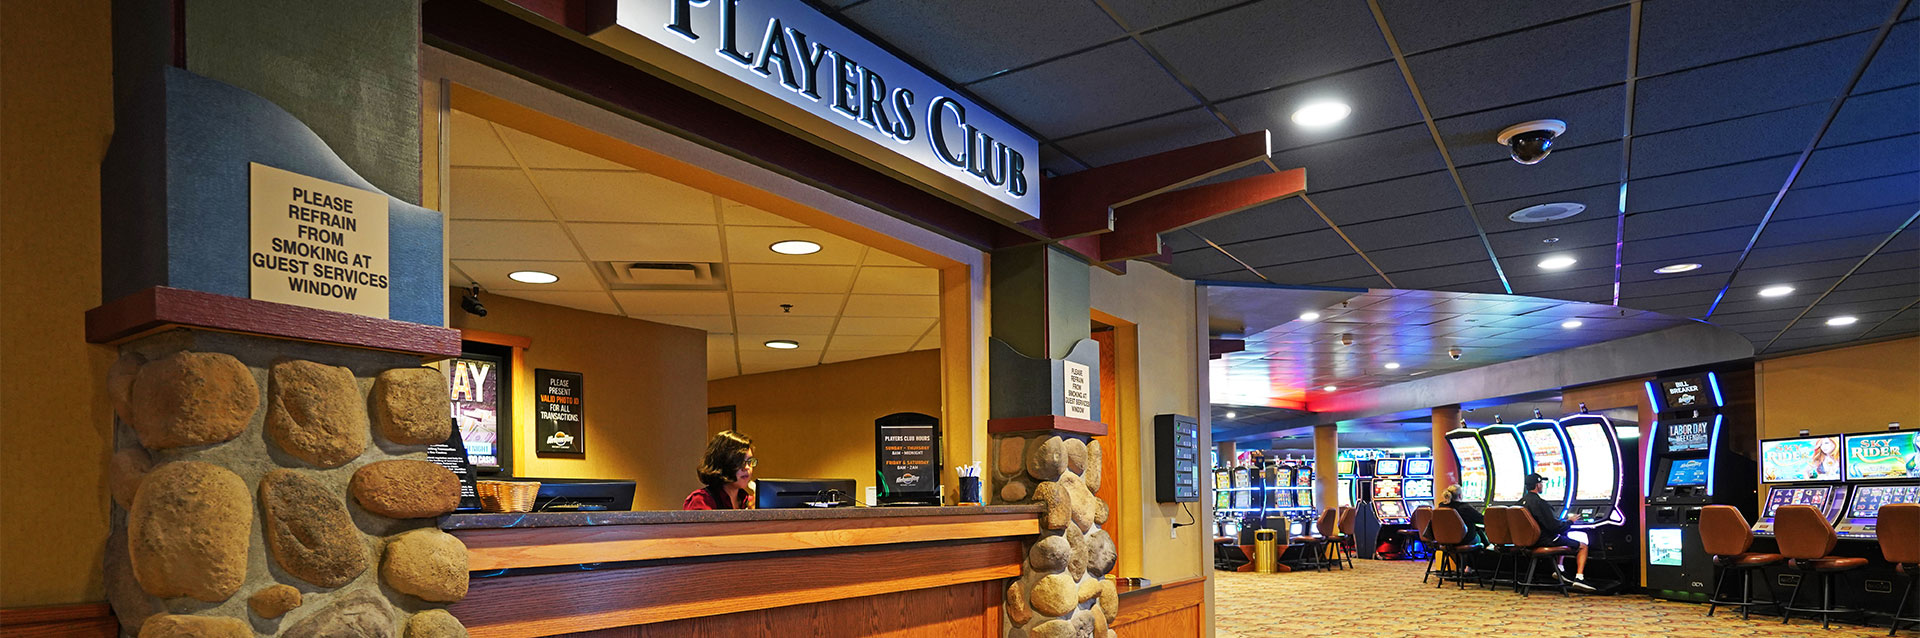 Players Club Casino Oxnard